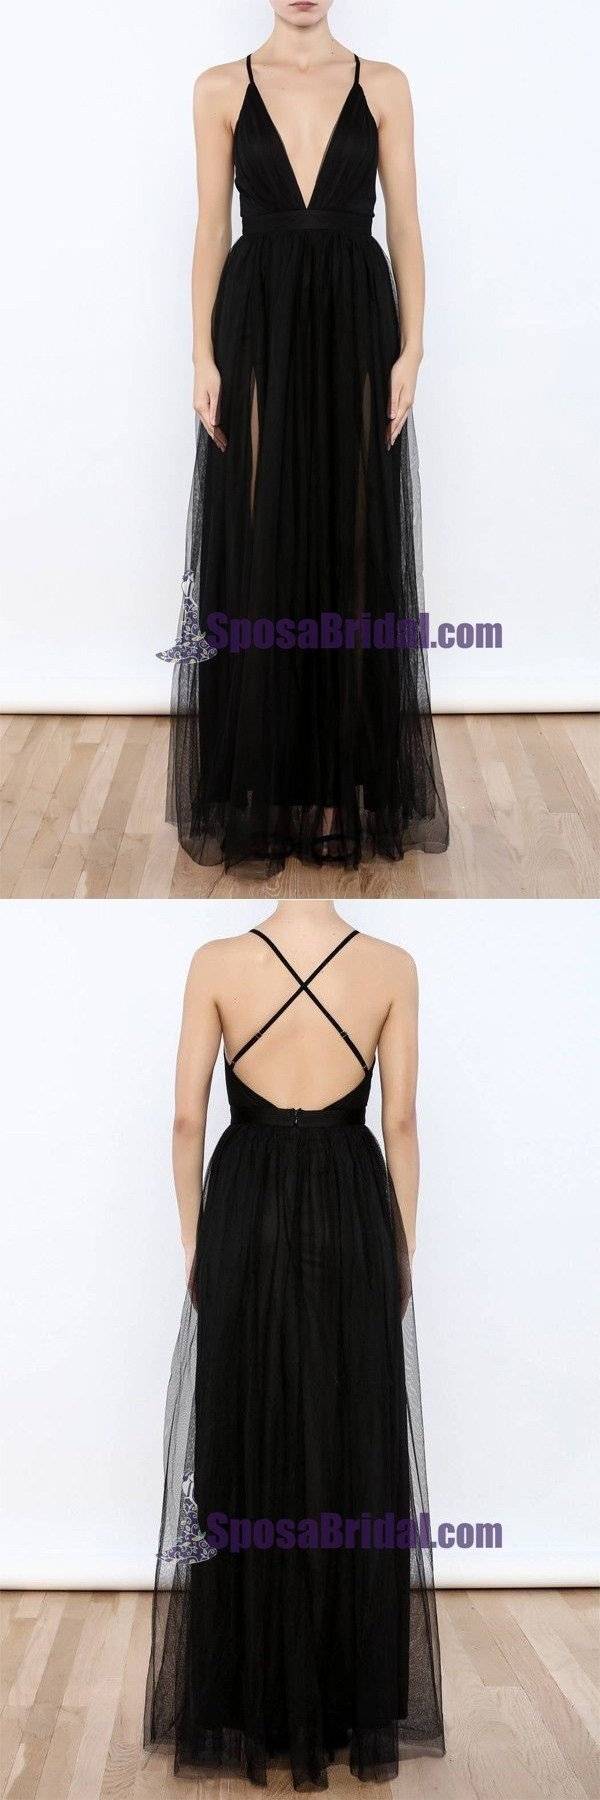 Black Tulle Spaghetti Straps Sexy Deep V Neck Popular Prom Dresses, Evening Dresses, Simple Soft Prom Dress, PD0733 - SposaBridal